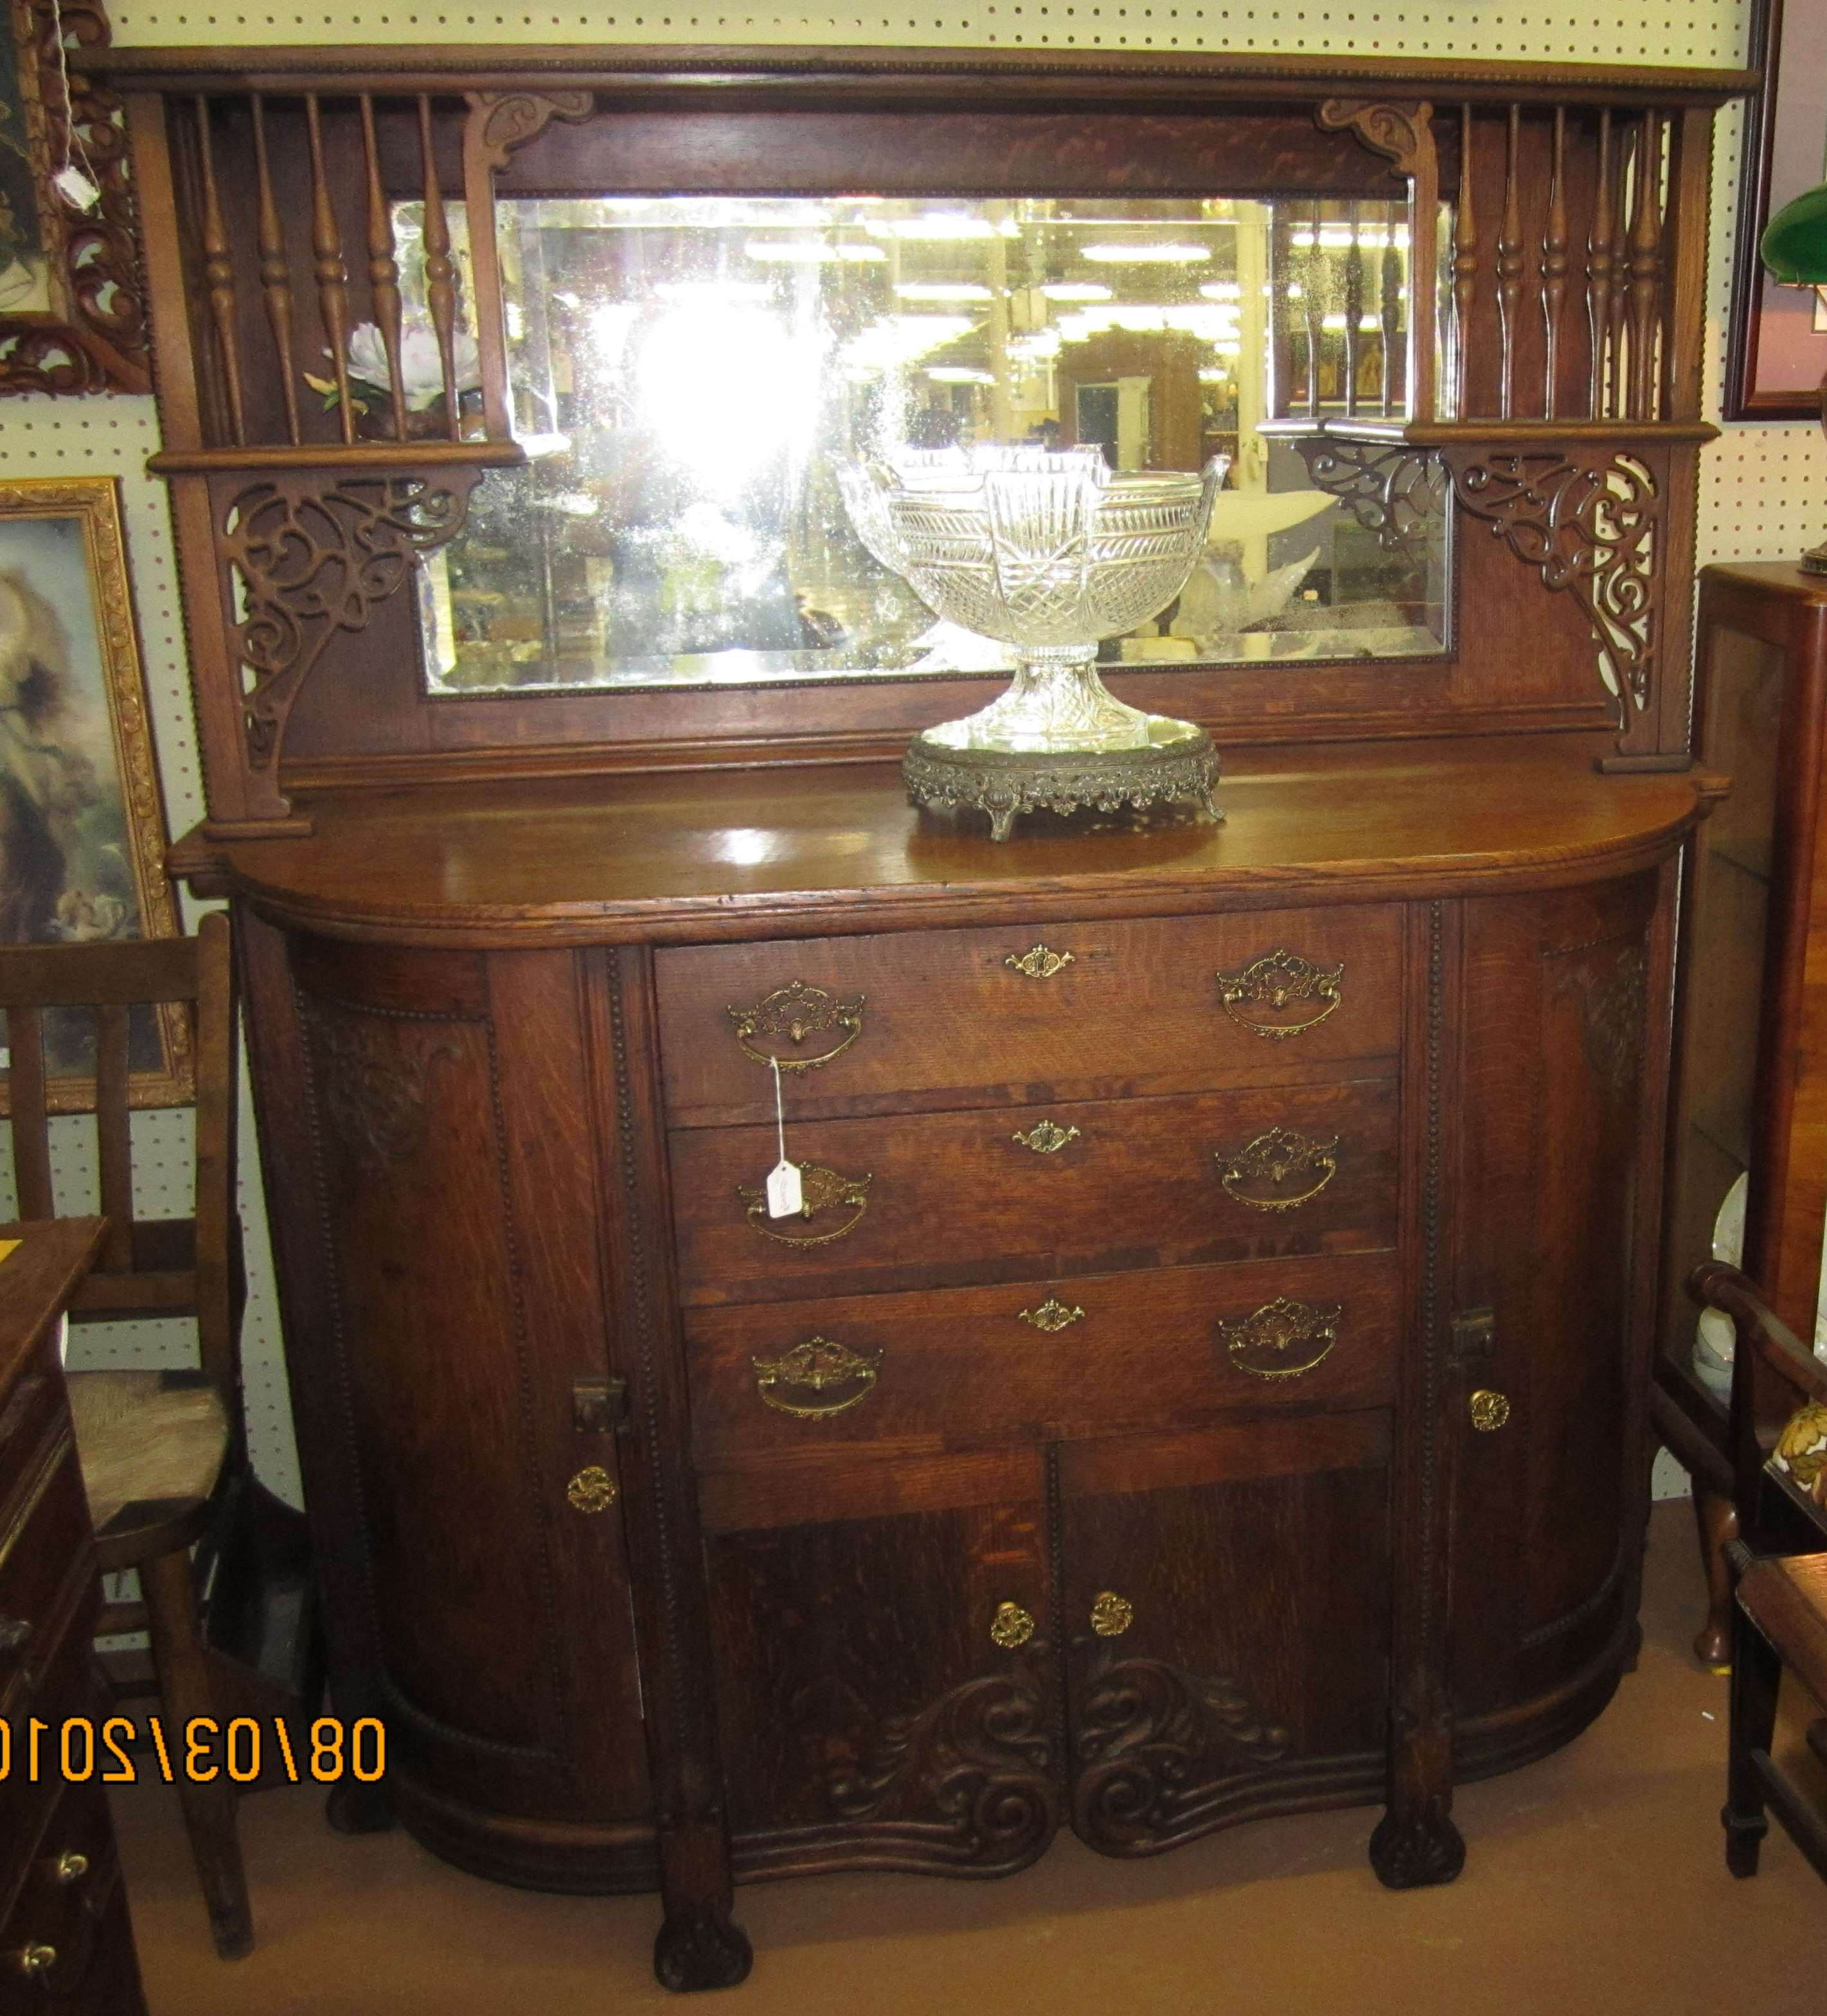 1800's American Oak Sideboard/buffet For Sale | Antiques Regarding Antique Sideboards And Buffets (View 3 of 20)